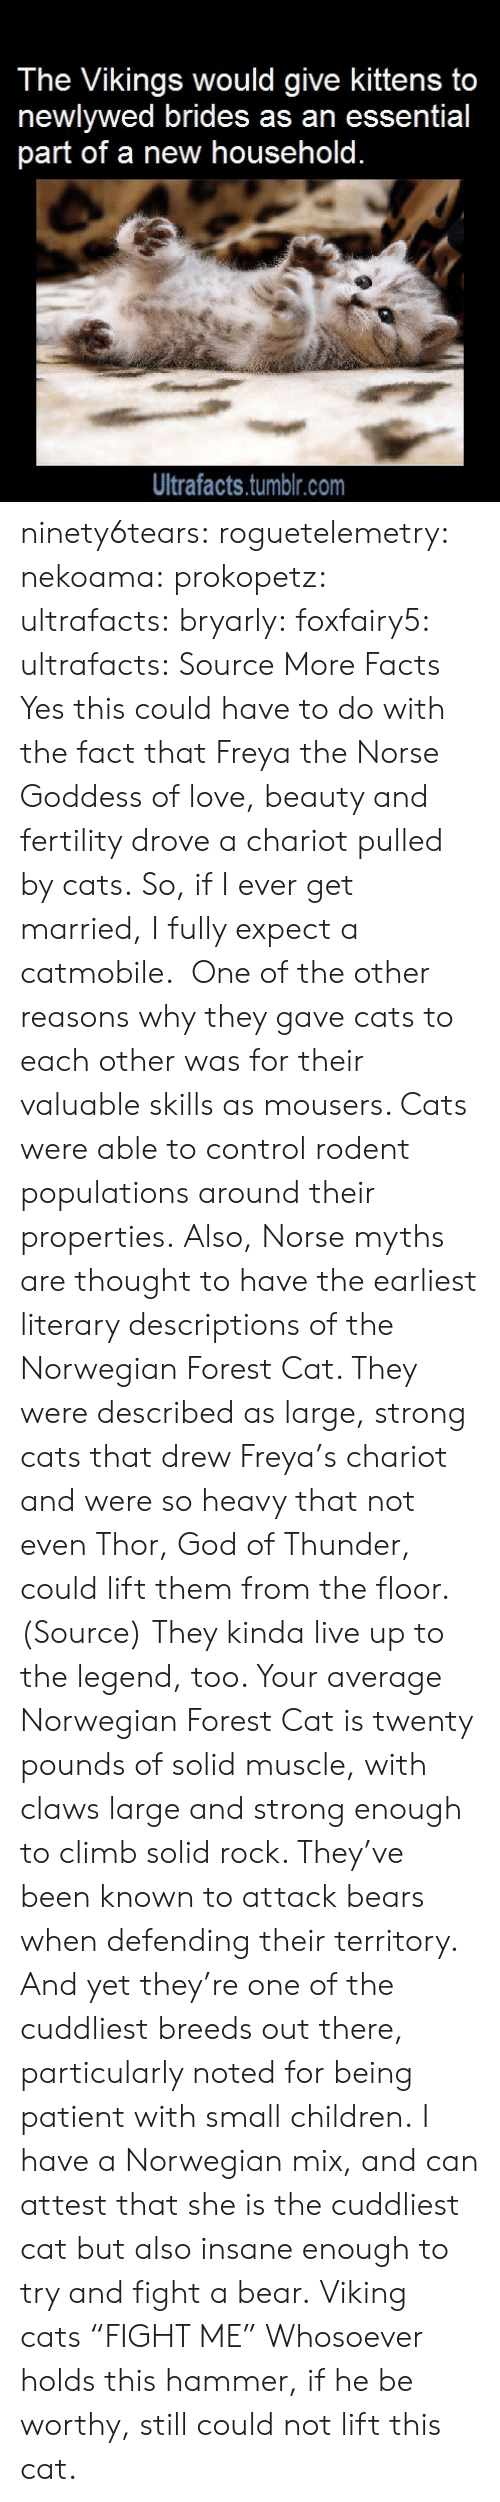 "Anaconda, Cats, and Children: The Vikings would give kittens to  newlywed brides as an essential  part of a new household.  Ultrafacts.tumblr.com ninety6tears:  roguetelemetry:   nekoama:   prokopetz:   ultrafacts:  bryarly:  foxfairy5:  ultrafacts:  Source More Facts  Yes this could have to do with the fact that Freya the Norse Goddess of love, beauty and fertility drove a chariot pulled by cats.  So, if I ever get married, I fully expect a catmobile.   One of the other reasons why they gave cats to each other was for their valuable skills as mousers. Cats were able to control rodent populations around their properties. Also, Norse myths are thought to have the earliest literary descriptions of the Norwegian Forest Cat. They were described as large, strong cats that drew Freya's chariot and were so heavy that not even Thor, God of Thunder, could lift them from the floor. (Source)  They kinda live up to the legend, too. Your average Norwegian Forest Cat is twenty pounds of solid muscle, with claws large and strong enough to climb solid rock. They've been known to attack bears when defending their territory. And yet they're one of the cuddliest breeds out there, particularly noted for being patient with small children.   I have a Norwegian mix, and can attest that she is the cuddliest cat but also insane enough to try and fight a bear.   Viking cats ""FIGHT ME""   Whosoever holds this hammer, if he be worthy, still could not lift this cat."